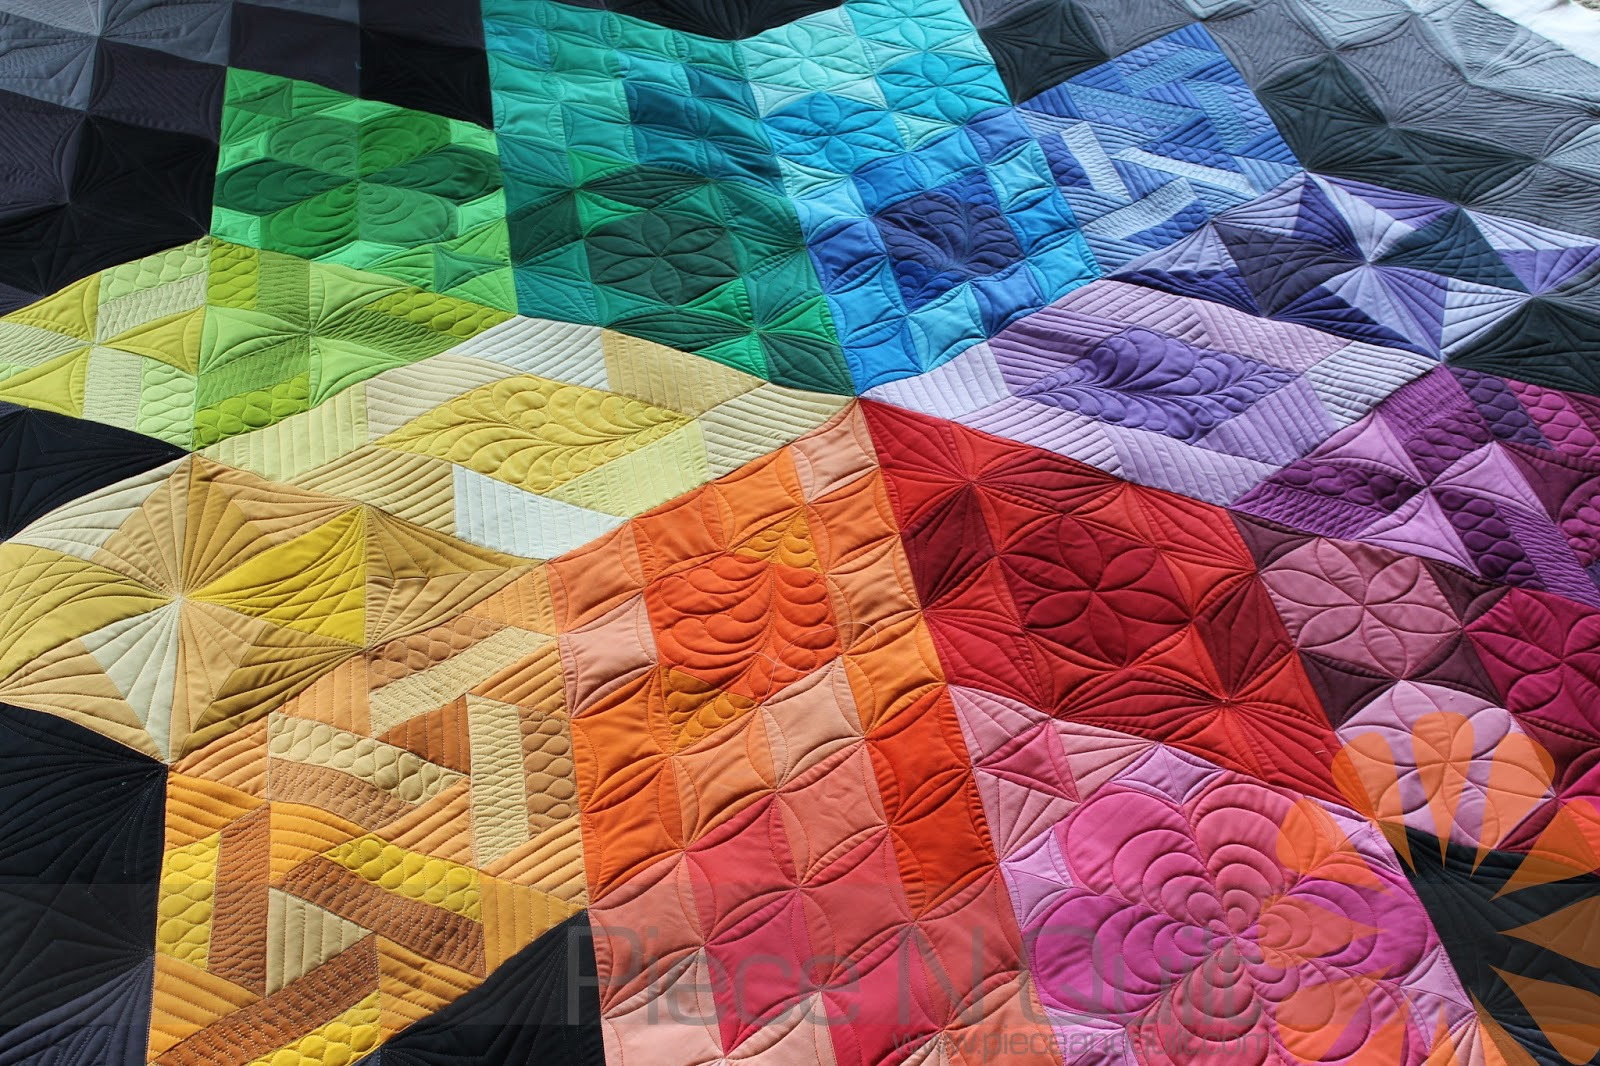 An example of a quilt you could create in the quilting club